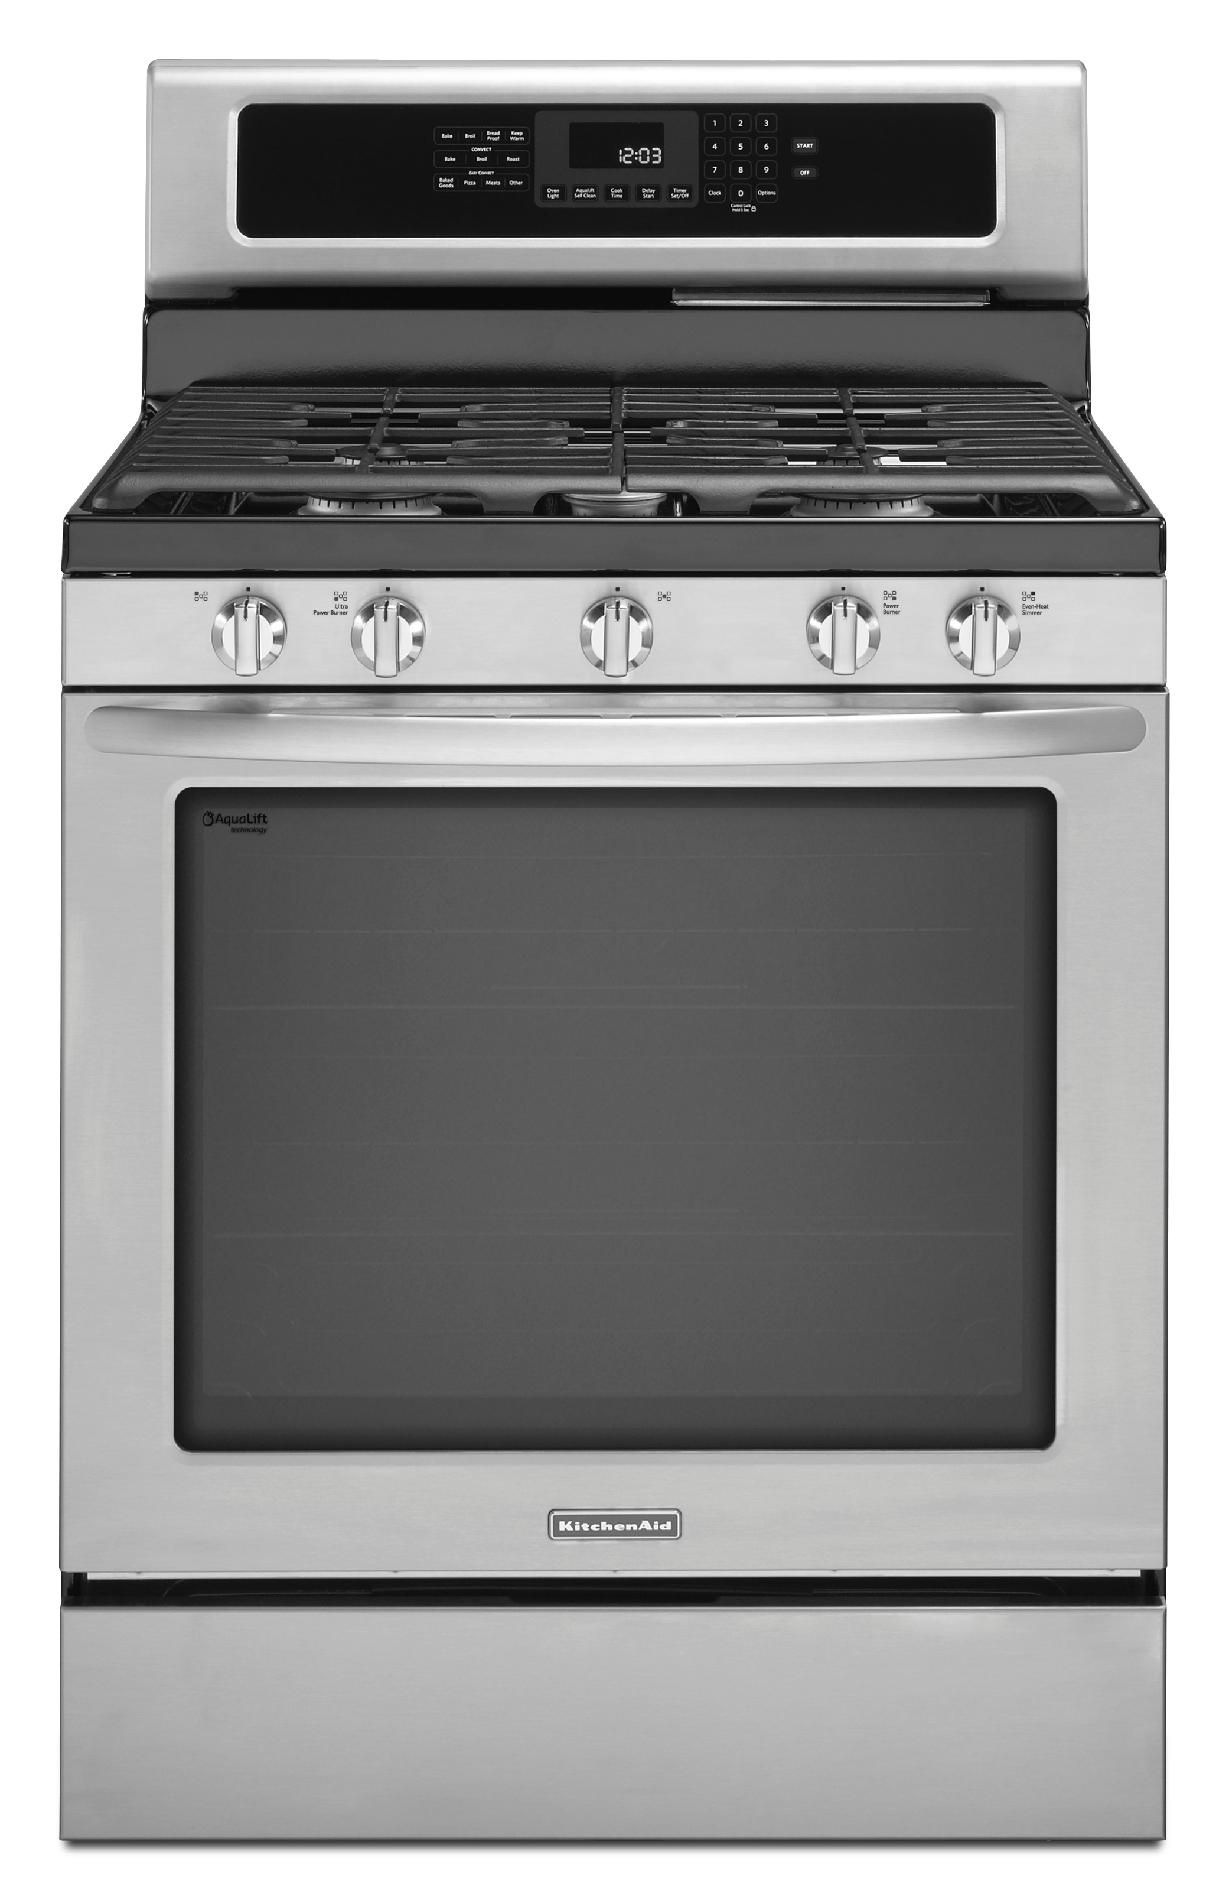 5-8-cu-ft-Freestanding-Gas-Range-w-Even-Heat-Technology-Stainless-Steel